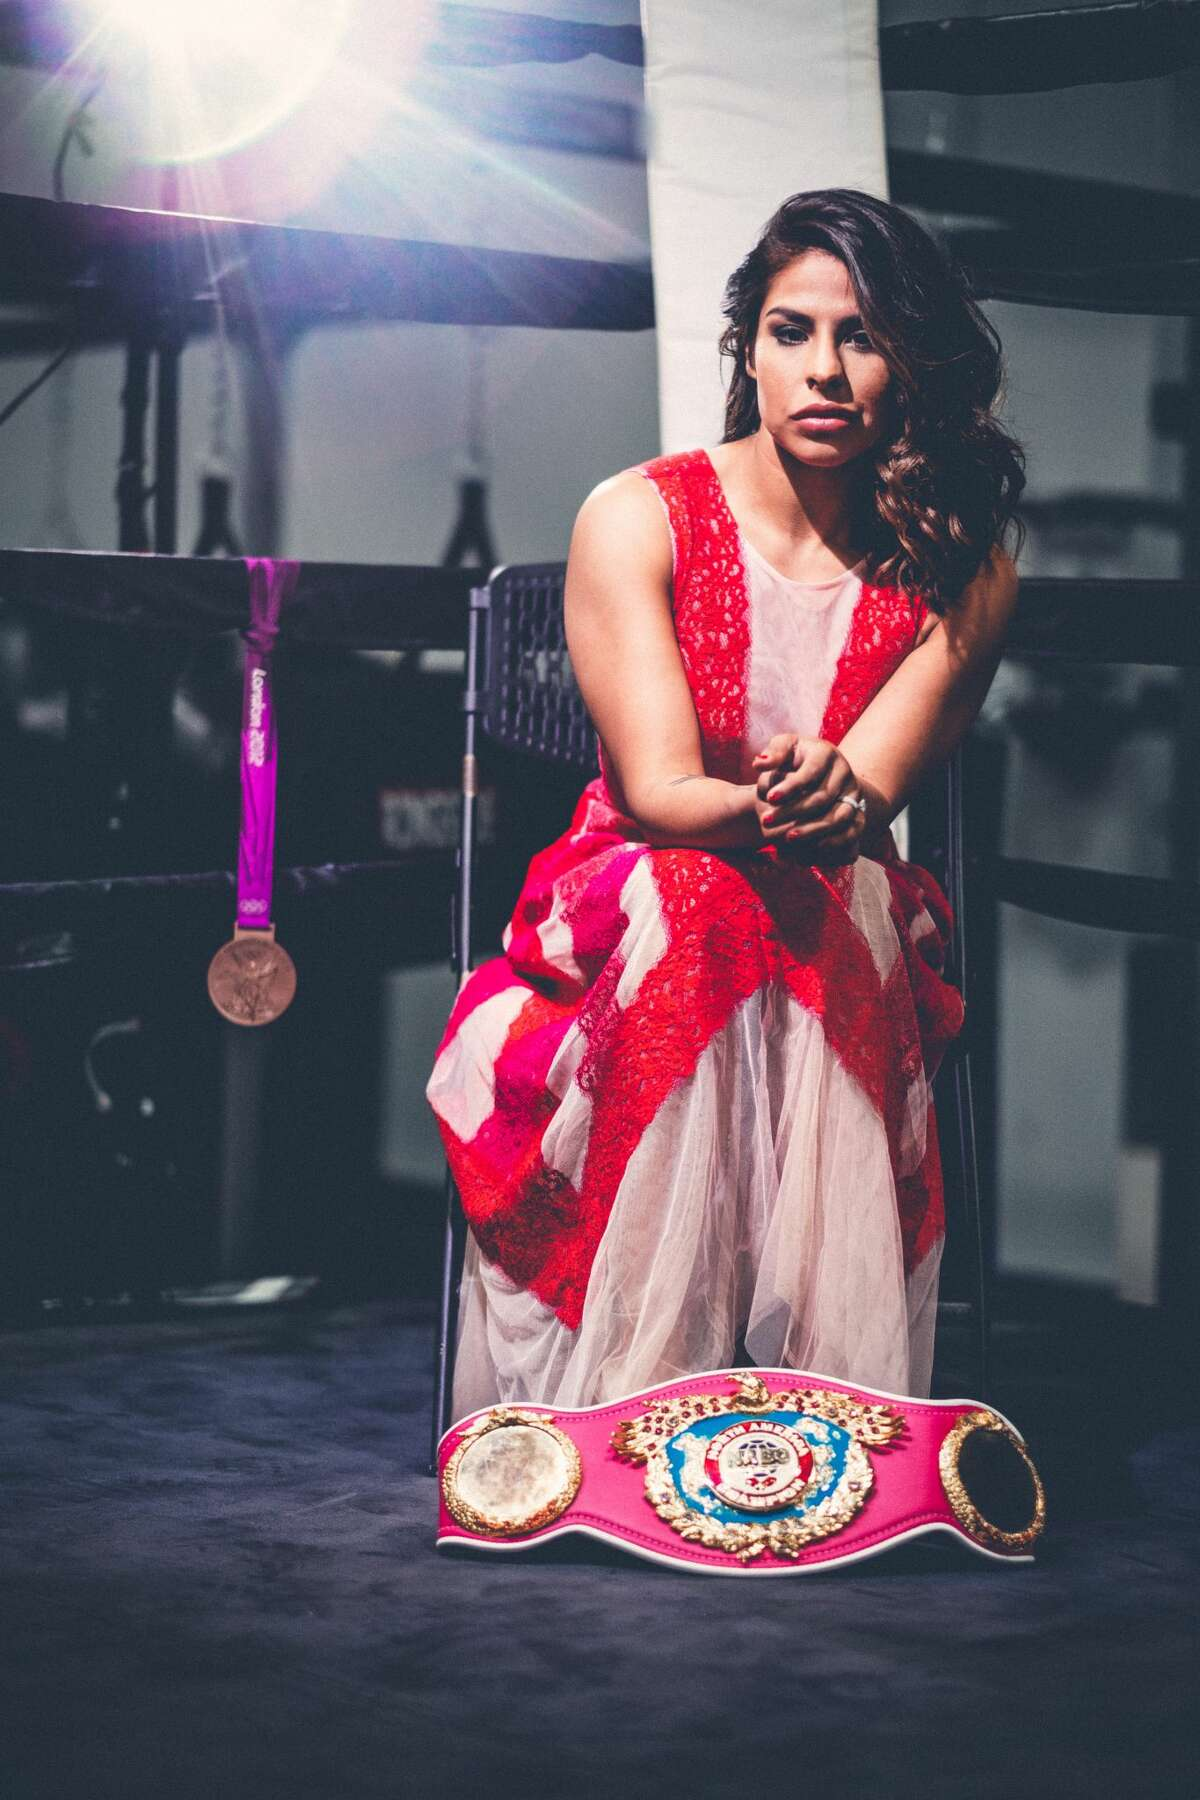 Houston boxer Marlen Esparza is ready to get back in the ring for her bout against contender Sulem Urbina on Oct. 30.